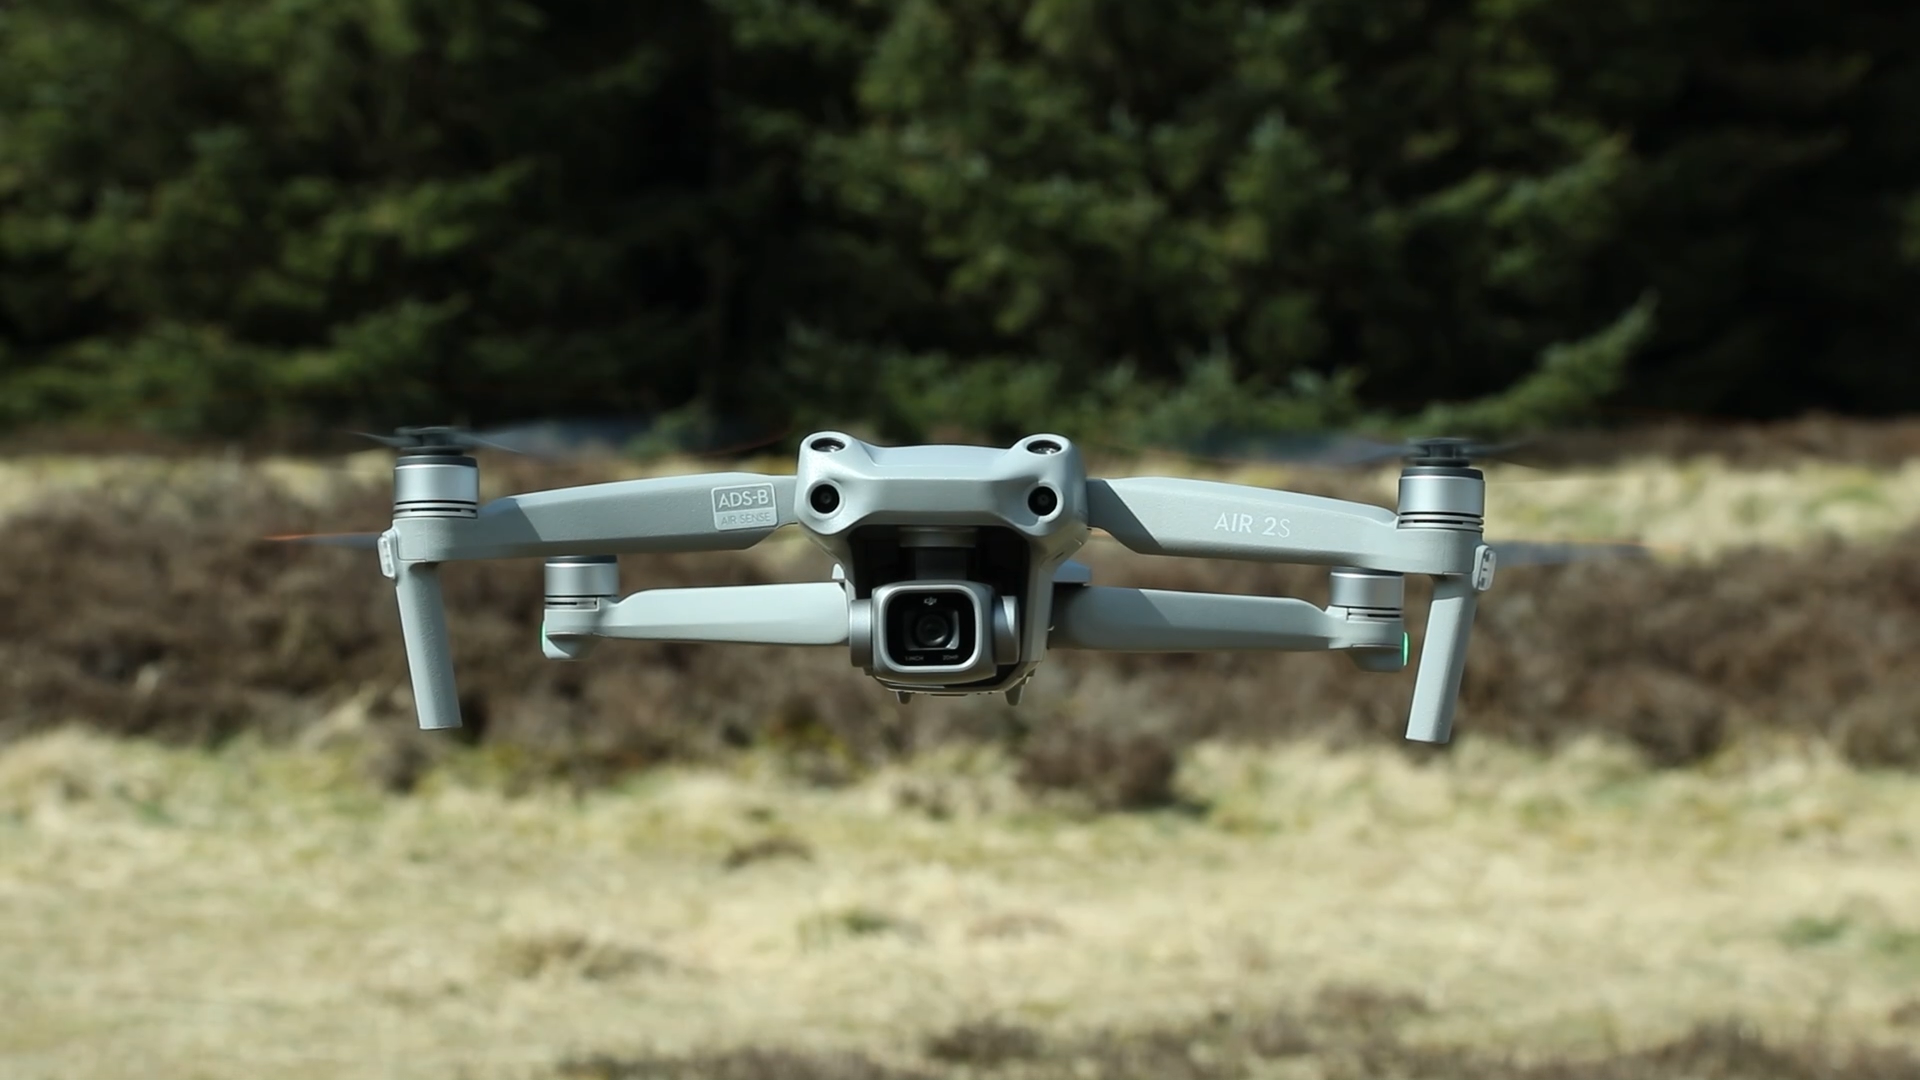 Video: DJI Air 2S is a landscape photographer's dream